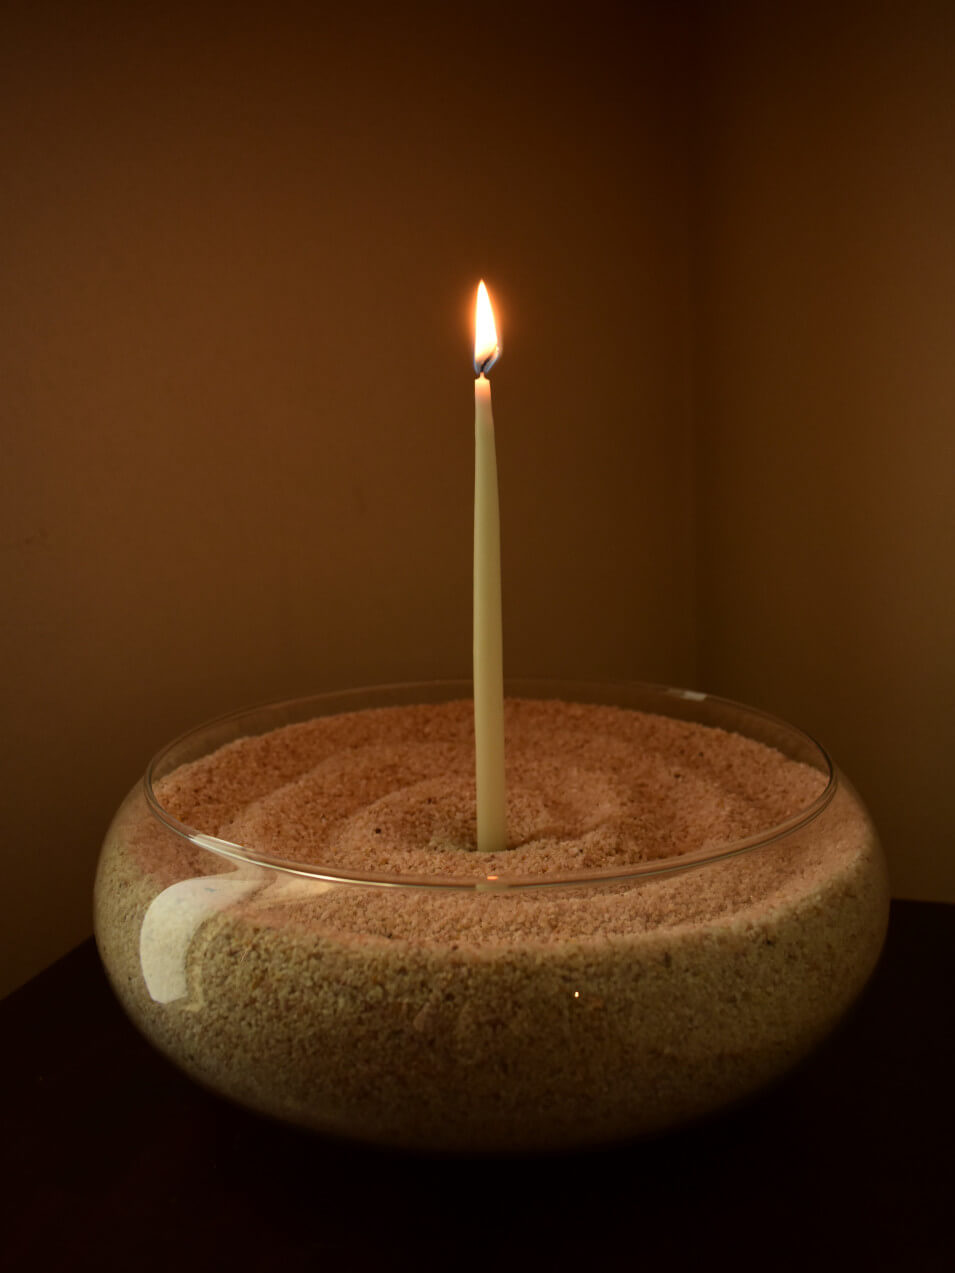 Glowing candle in a bowl of sand.